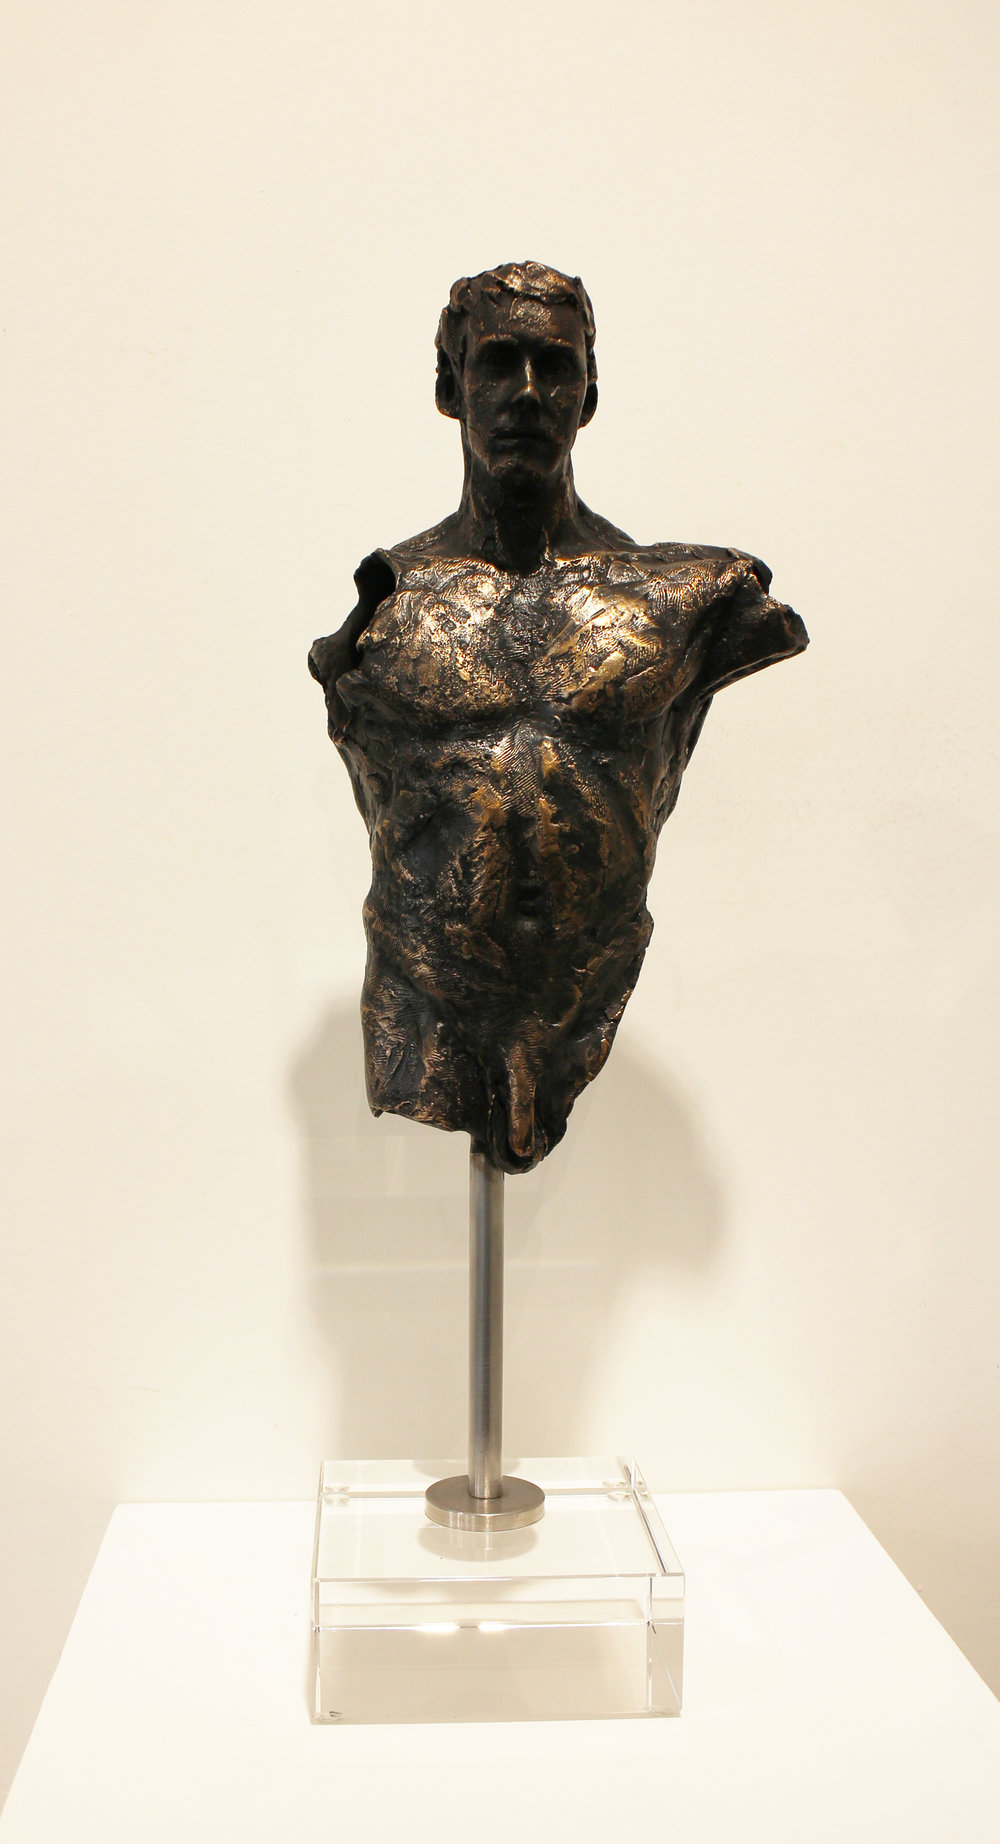 Adriaan Diedericks  'Floating Fragment'  Bronze  Edition 01/12   40 x 13 x 10 cm